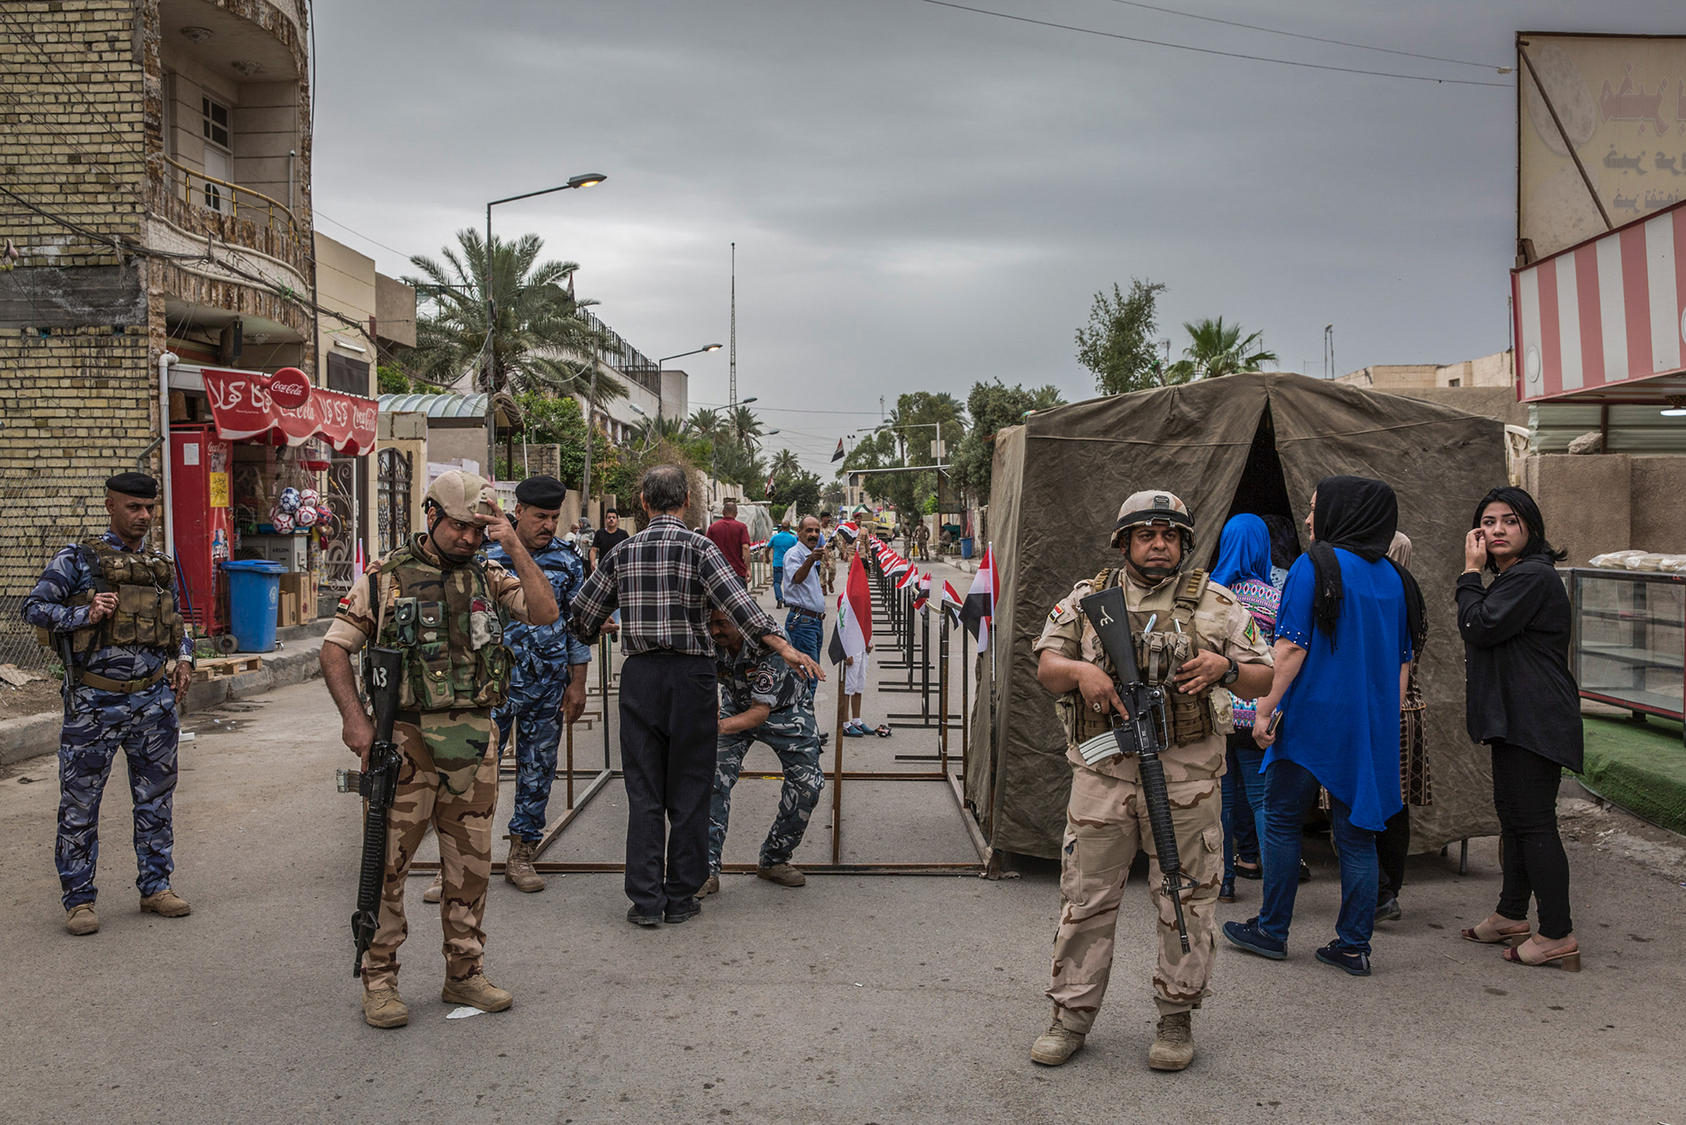 Soldiers stand guard at a polling place during Iraq's national elections, in Baghdad, May 12, 2018. (Ivor Prickett/The New York Times)